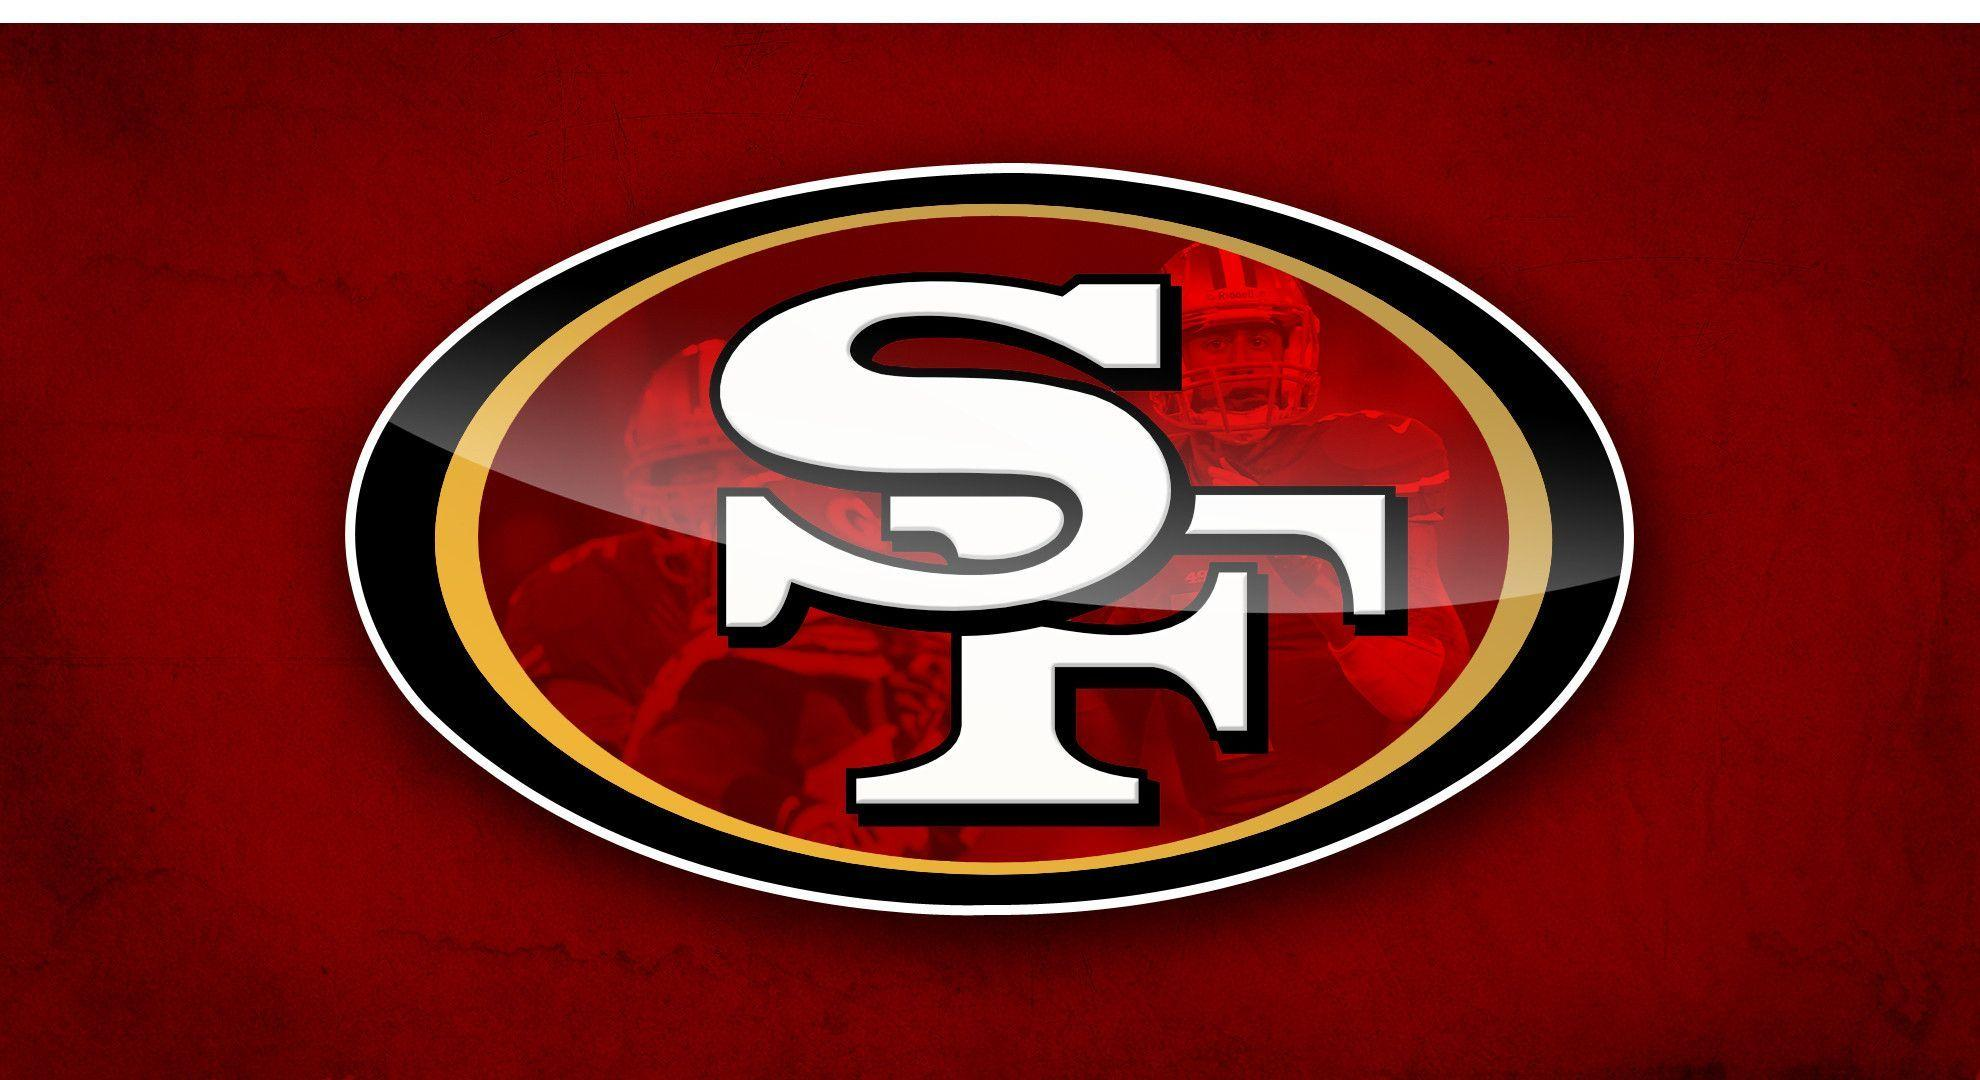 49ers hd wallpaper